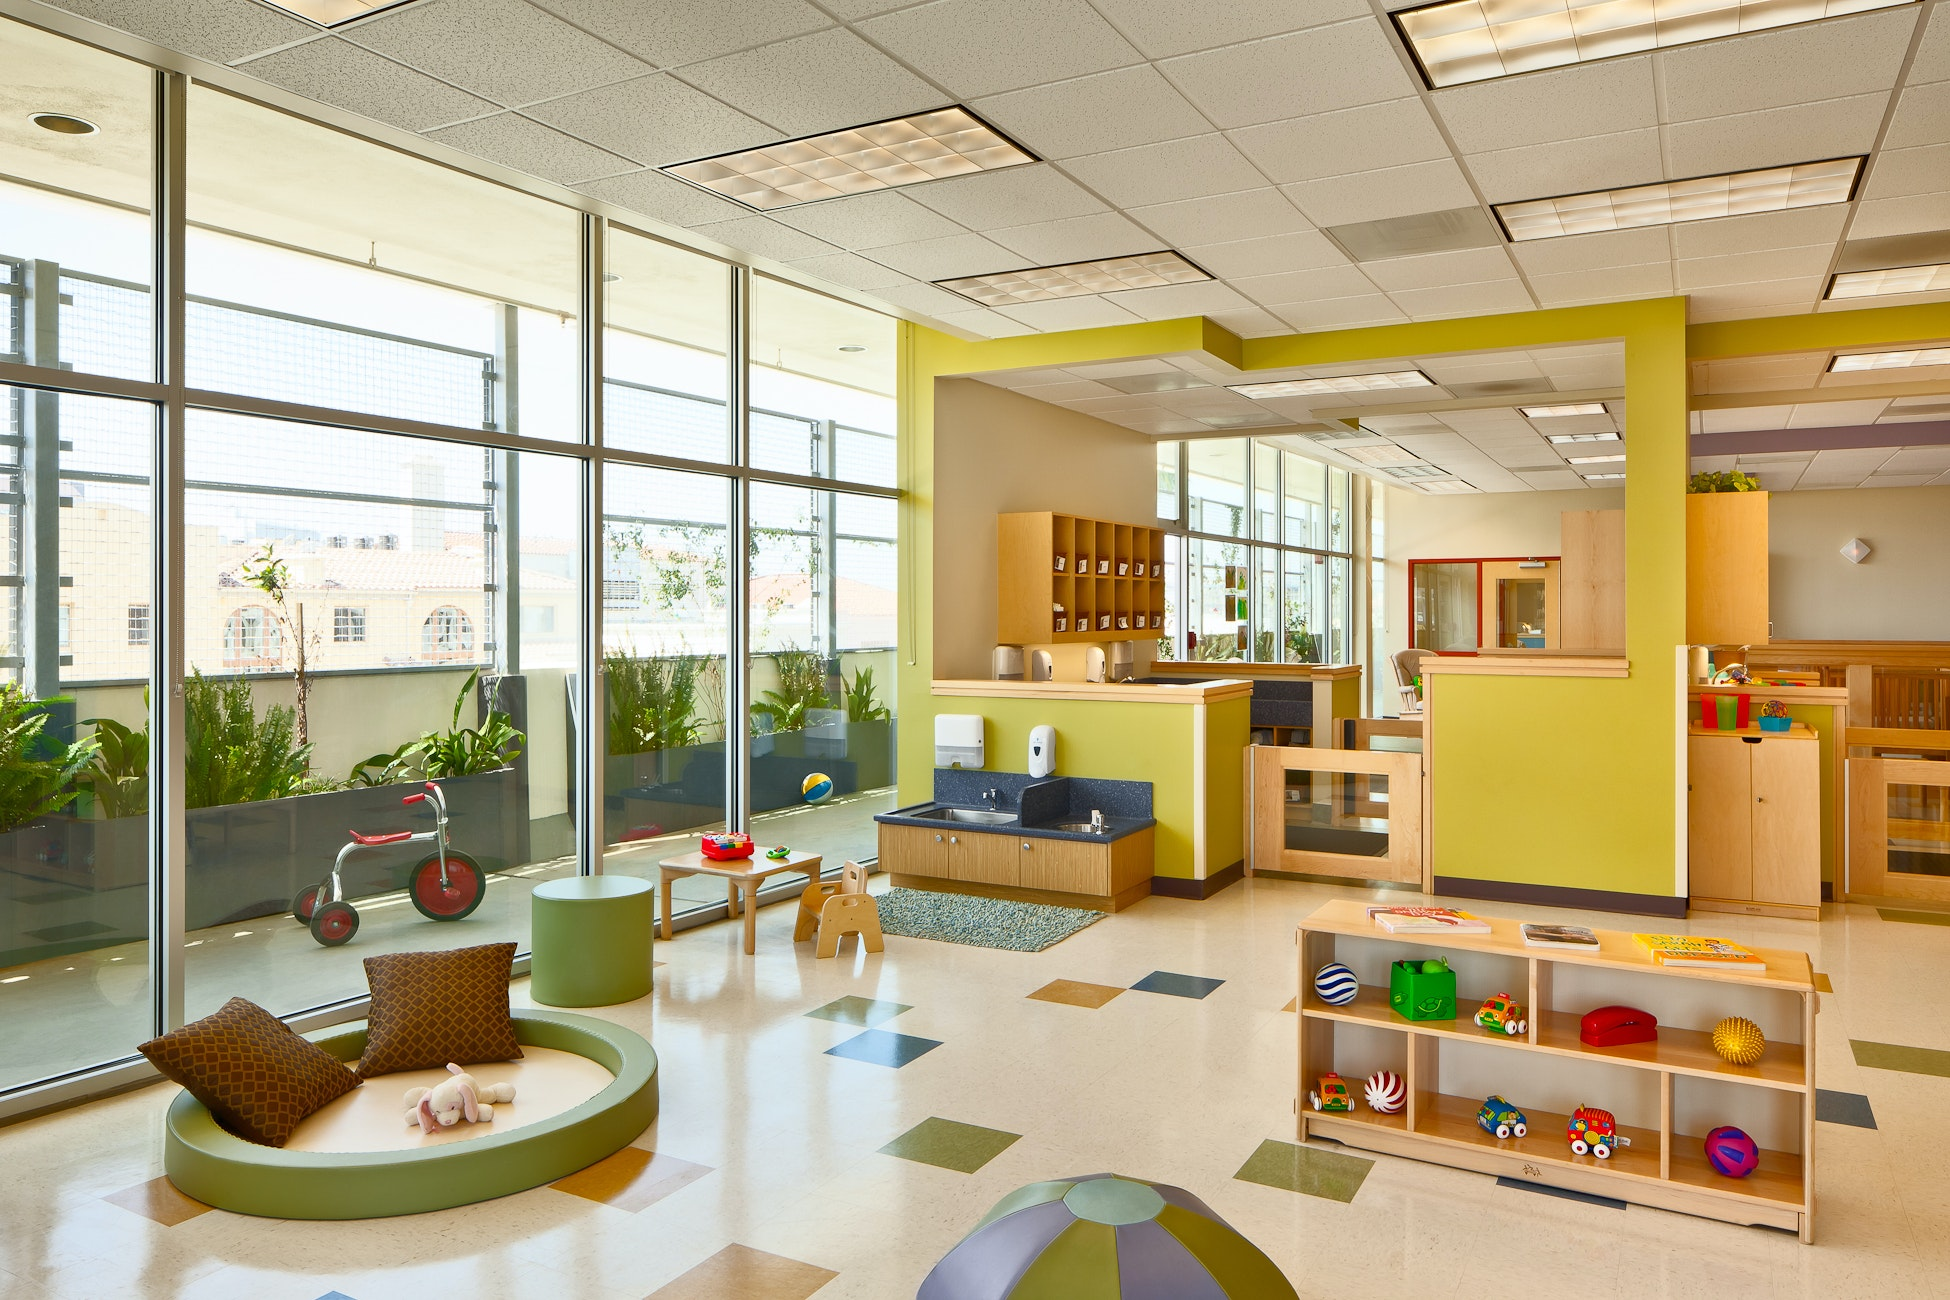 Modern Childcare Facility For 215 Students + Staff. Early Childhood  Development Design Program. Vibrant